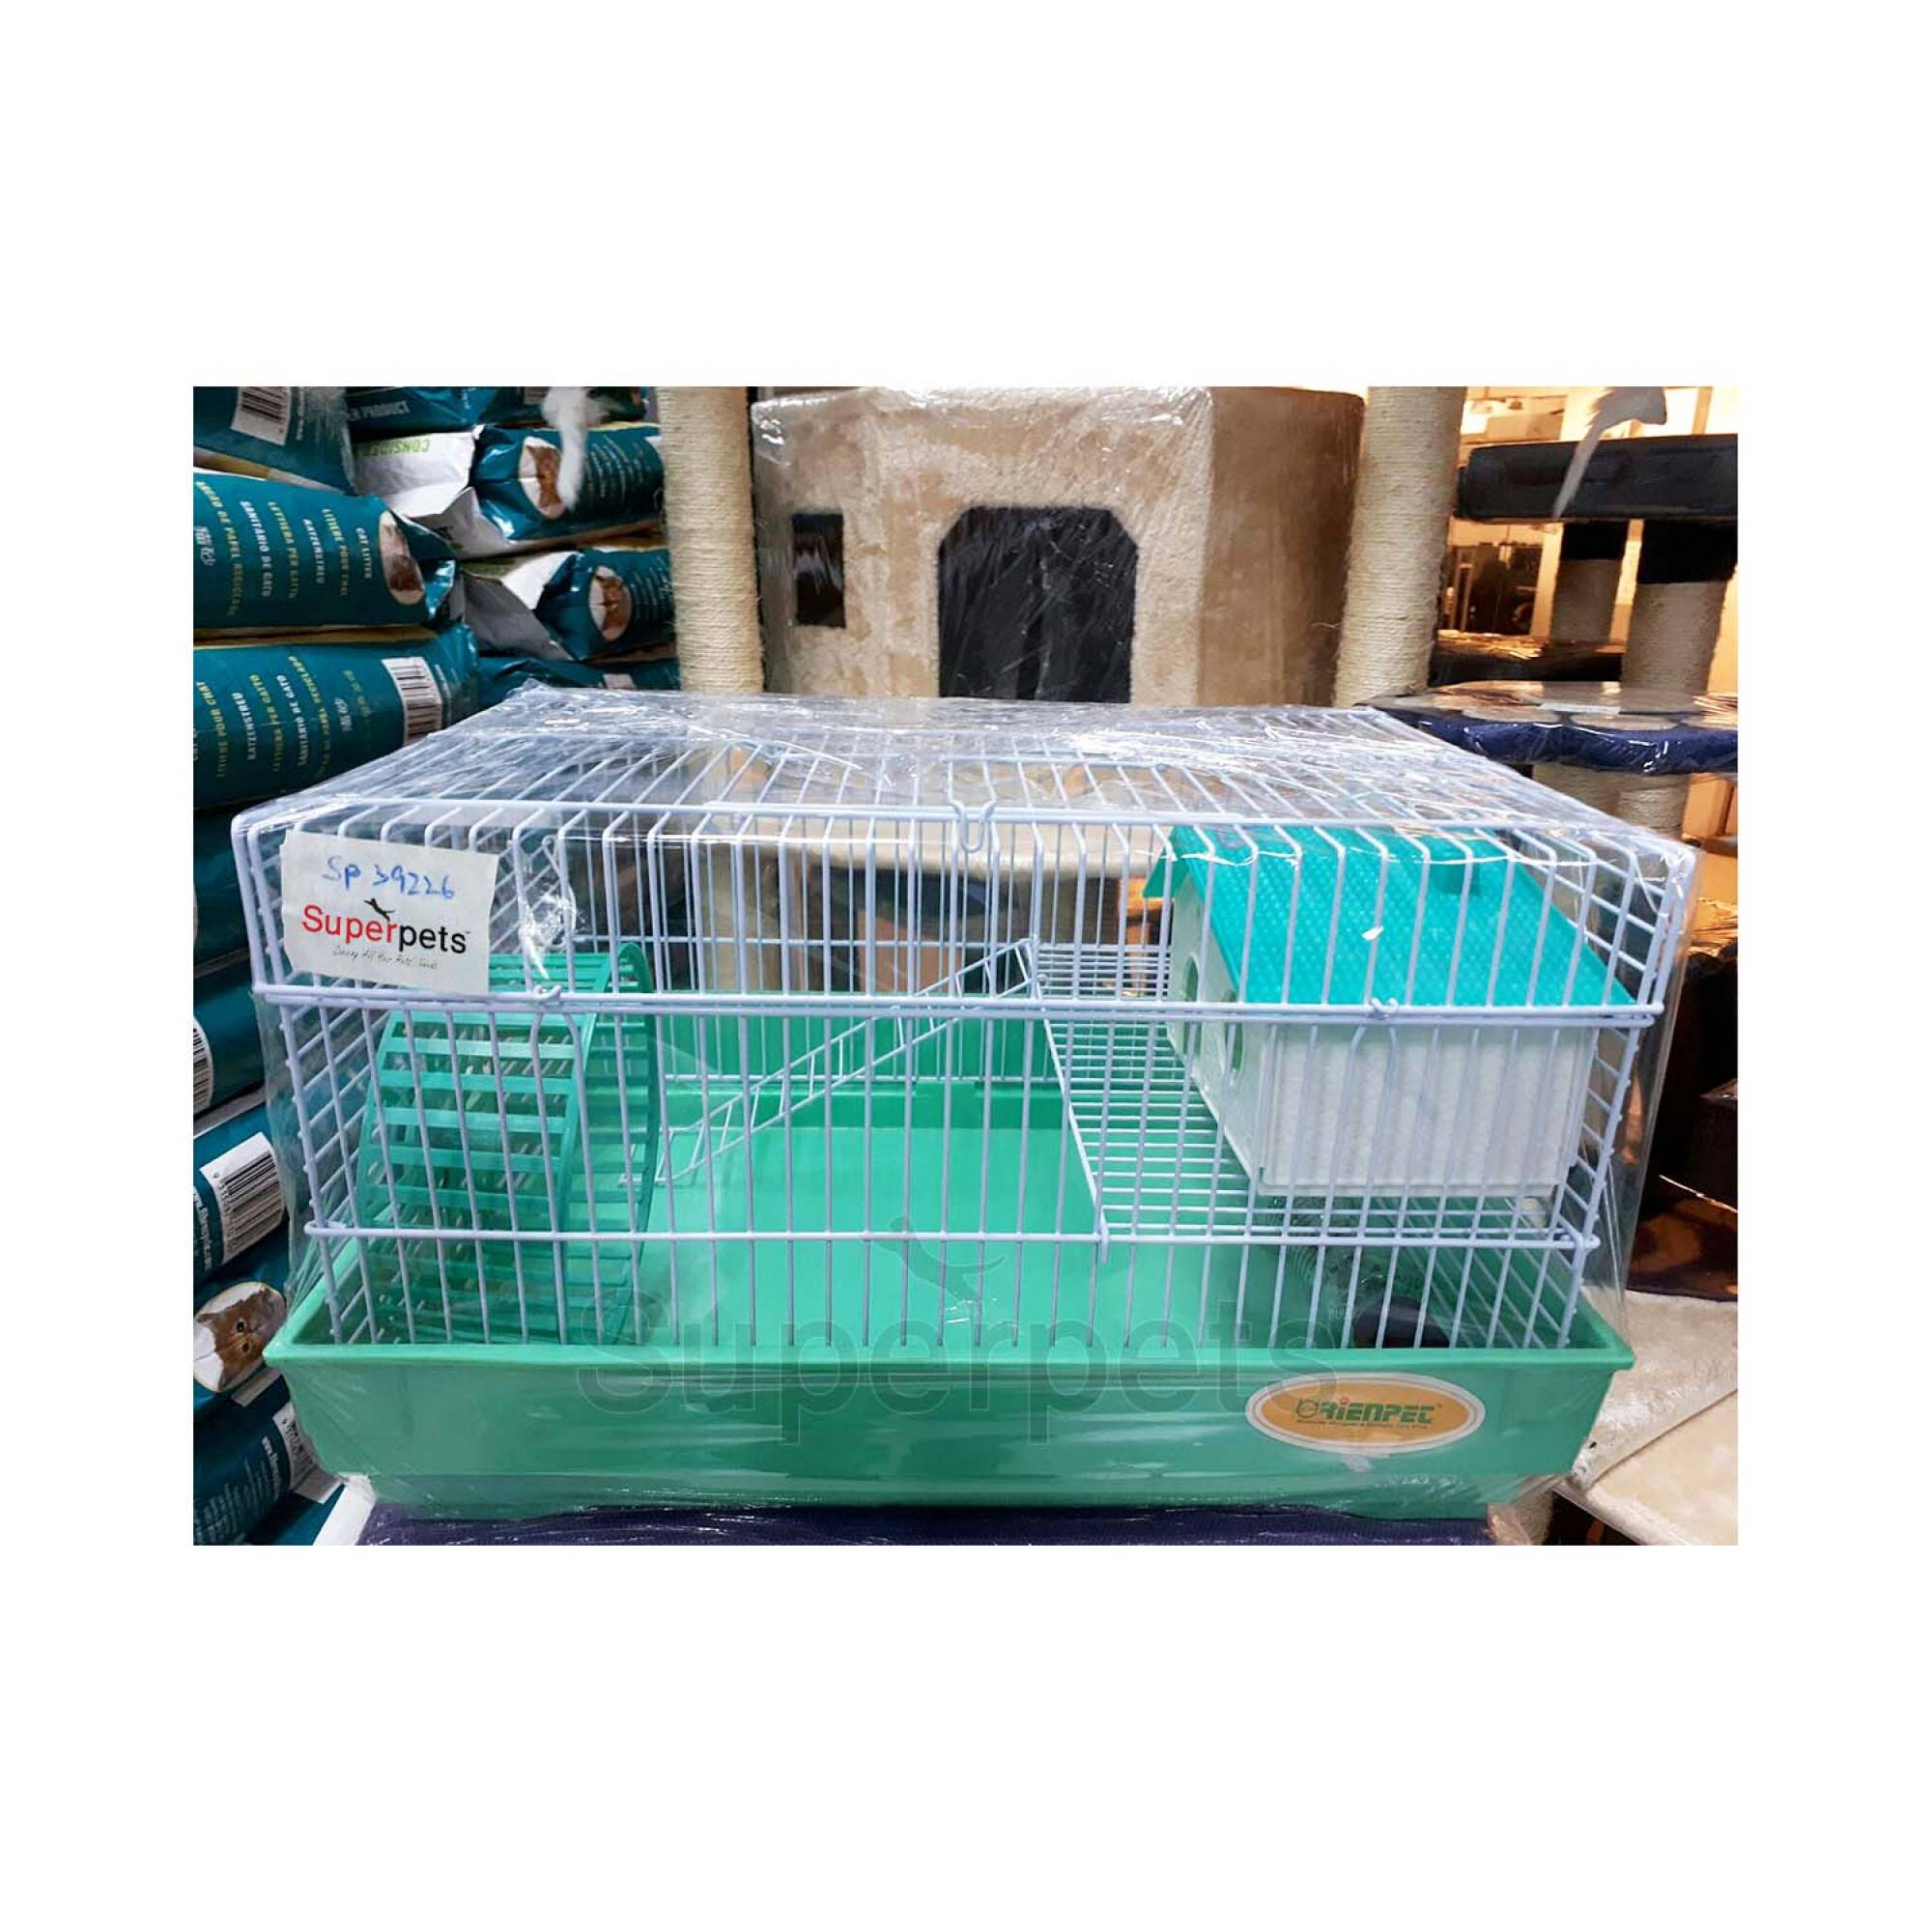 OPSP39226 Hamster Cage - Blue / Brown / Green - Green